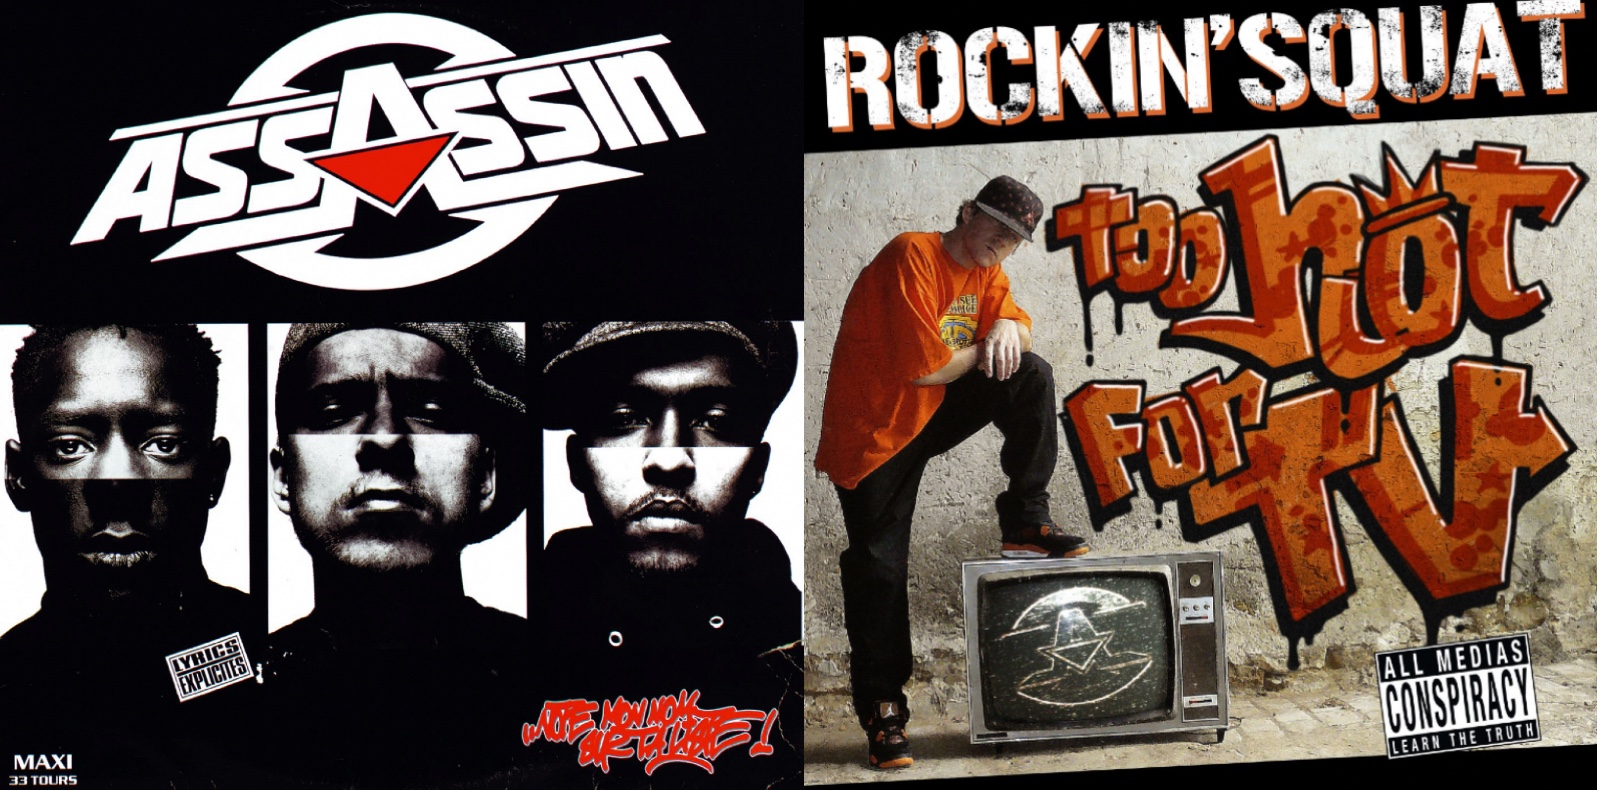 """""""Note mon nom sur ta liste"""" Assassin (1991) and """"Too Hot for TV"""" by Rockin'Squat."""